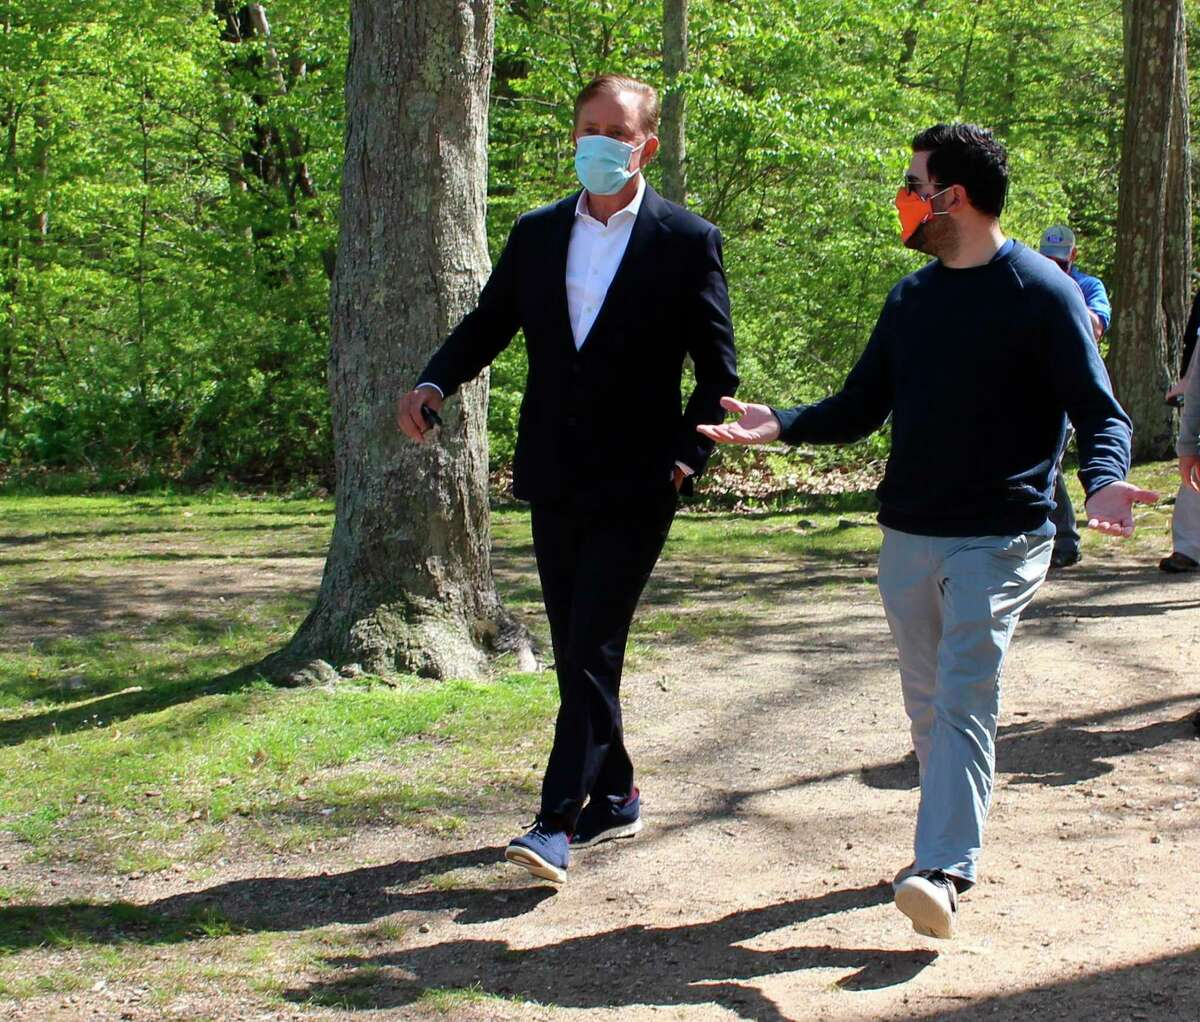 Connecticut Gov. Ned Lamont, left, talks to his communications director, Max Reiss, as they head to a news conference at Gay City State Park in Hebron in May.